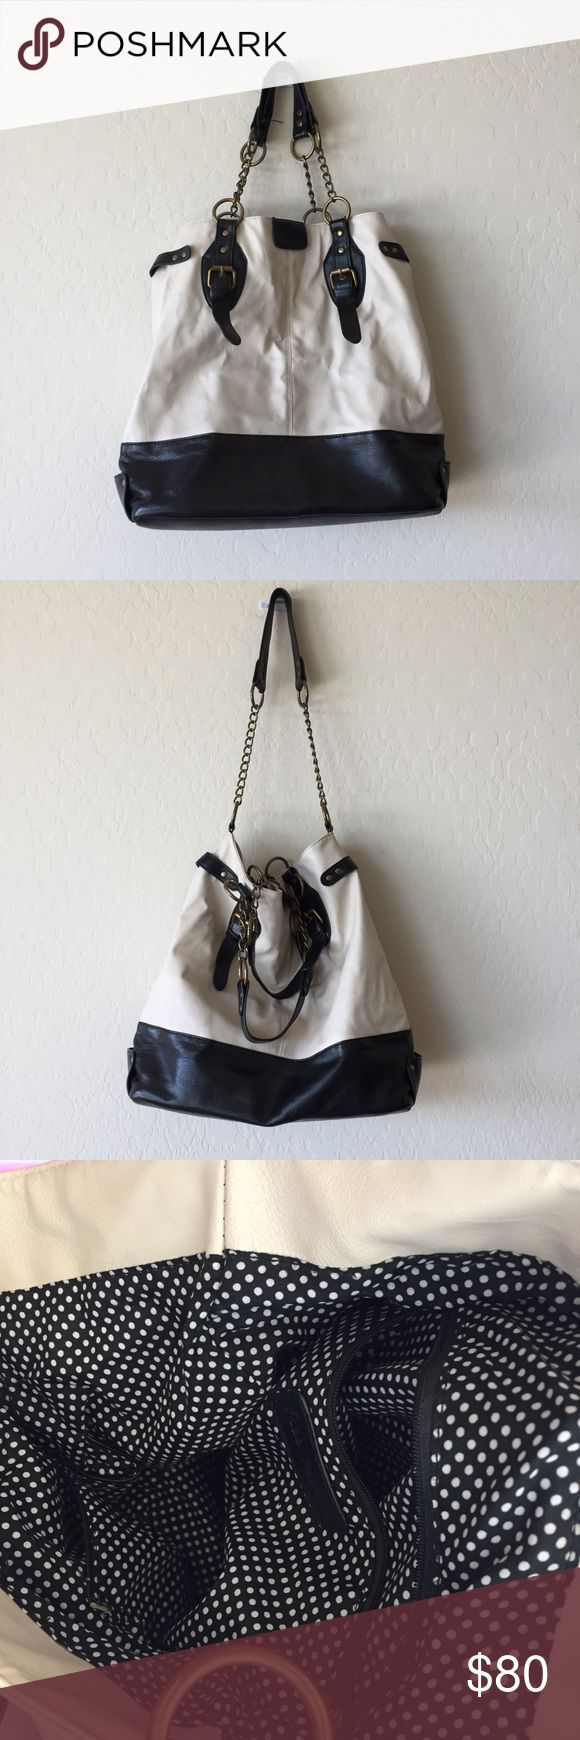 Free People large bucket tote large tote with shoulder handles and a longer crossbody strap. polka-dot interior lining. great condition. NO TRADES. Free People Bags Shoulder Bags